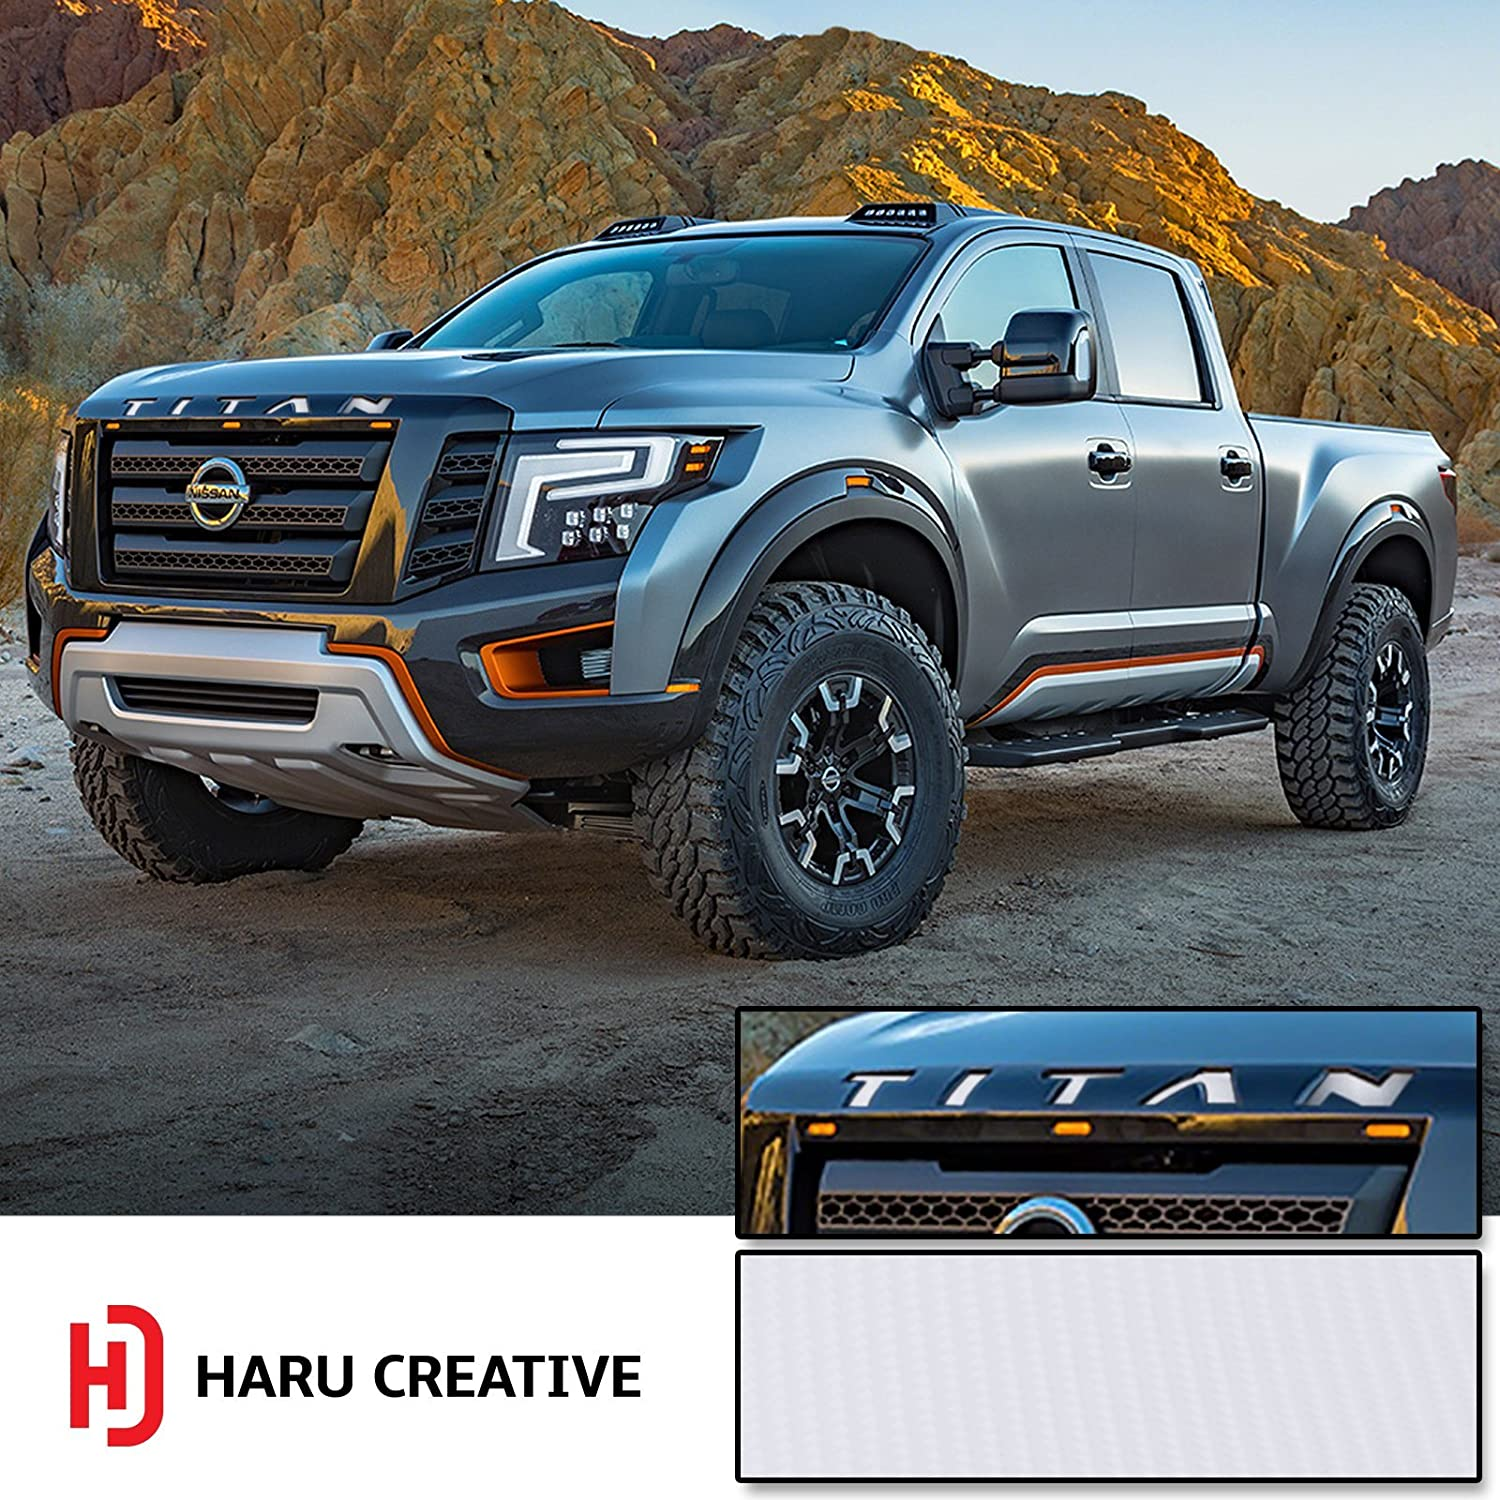 Front Hood Grille Emblem Letter Insert Overlay Vinyl Decal Sticker Compatible with and Fits Nissan Titan XD 2016 2017 2018-4D Carbon Fiber Gunmetal Haru Creative